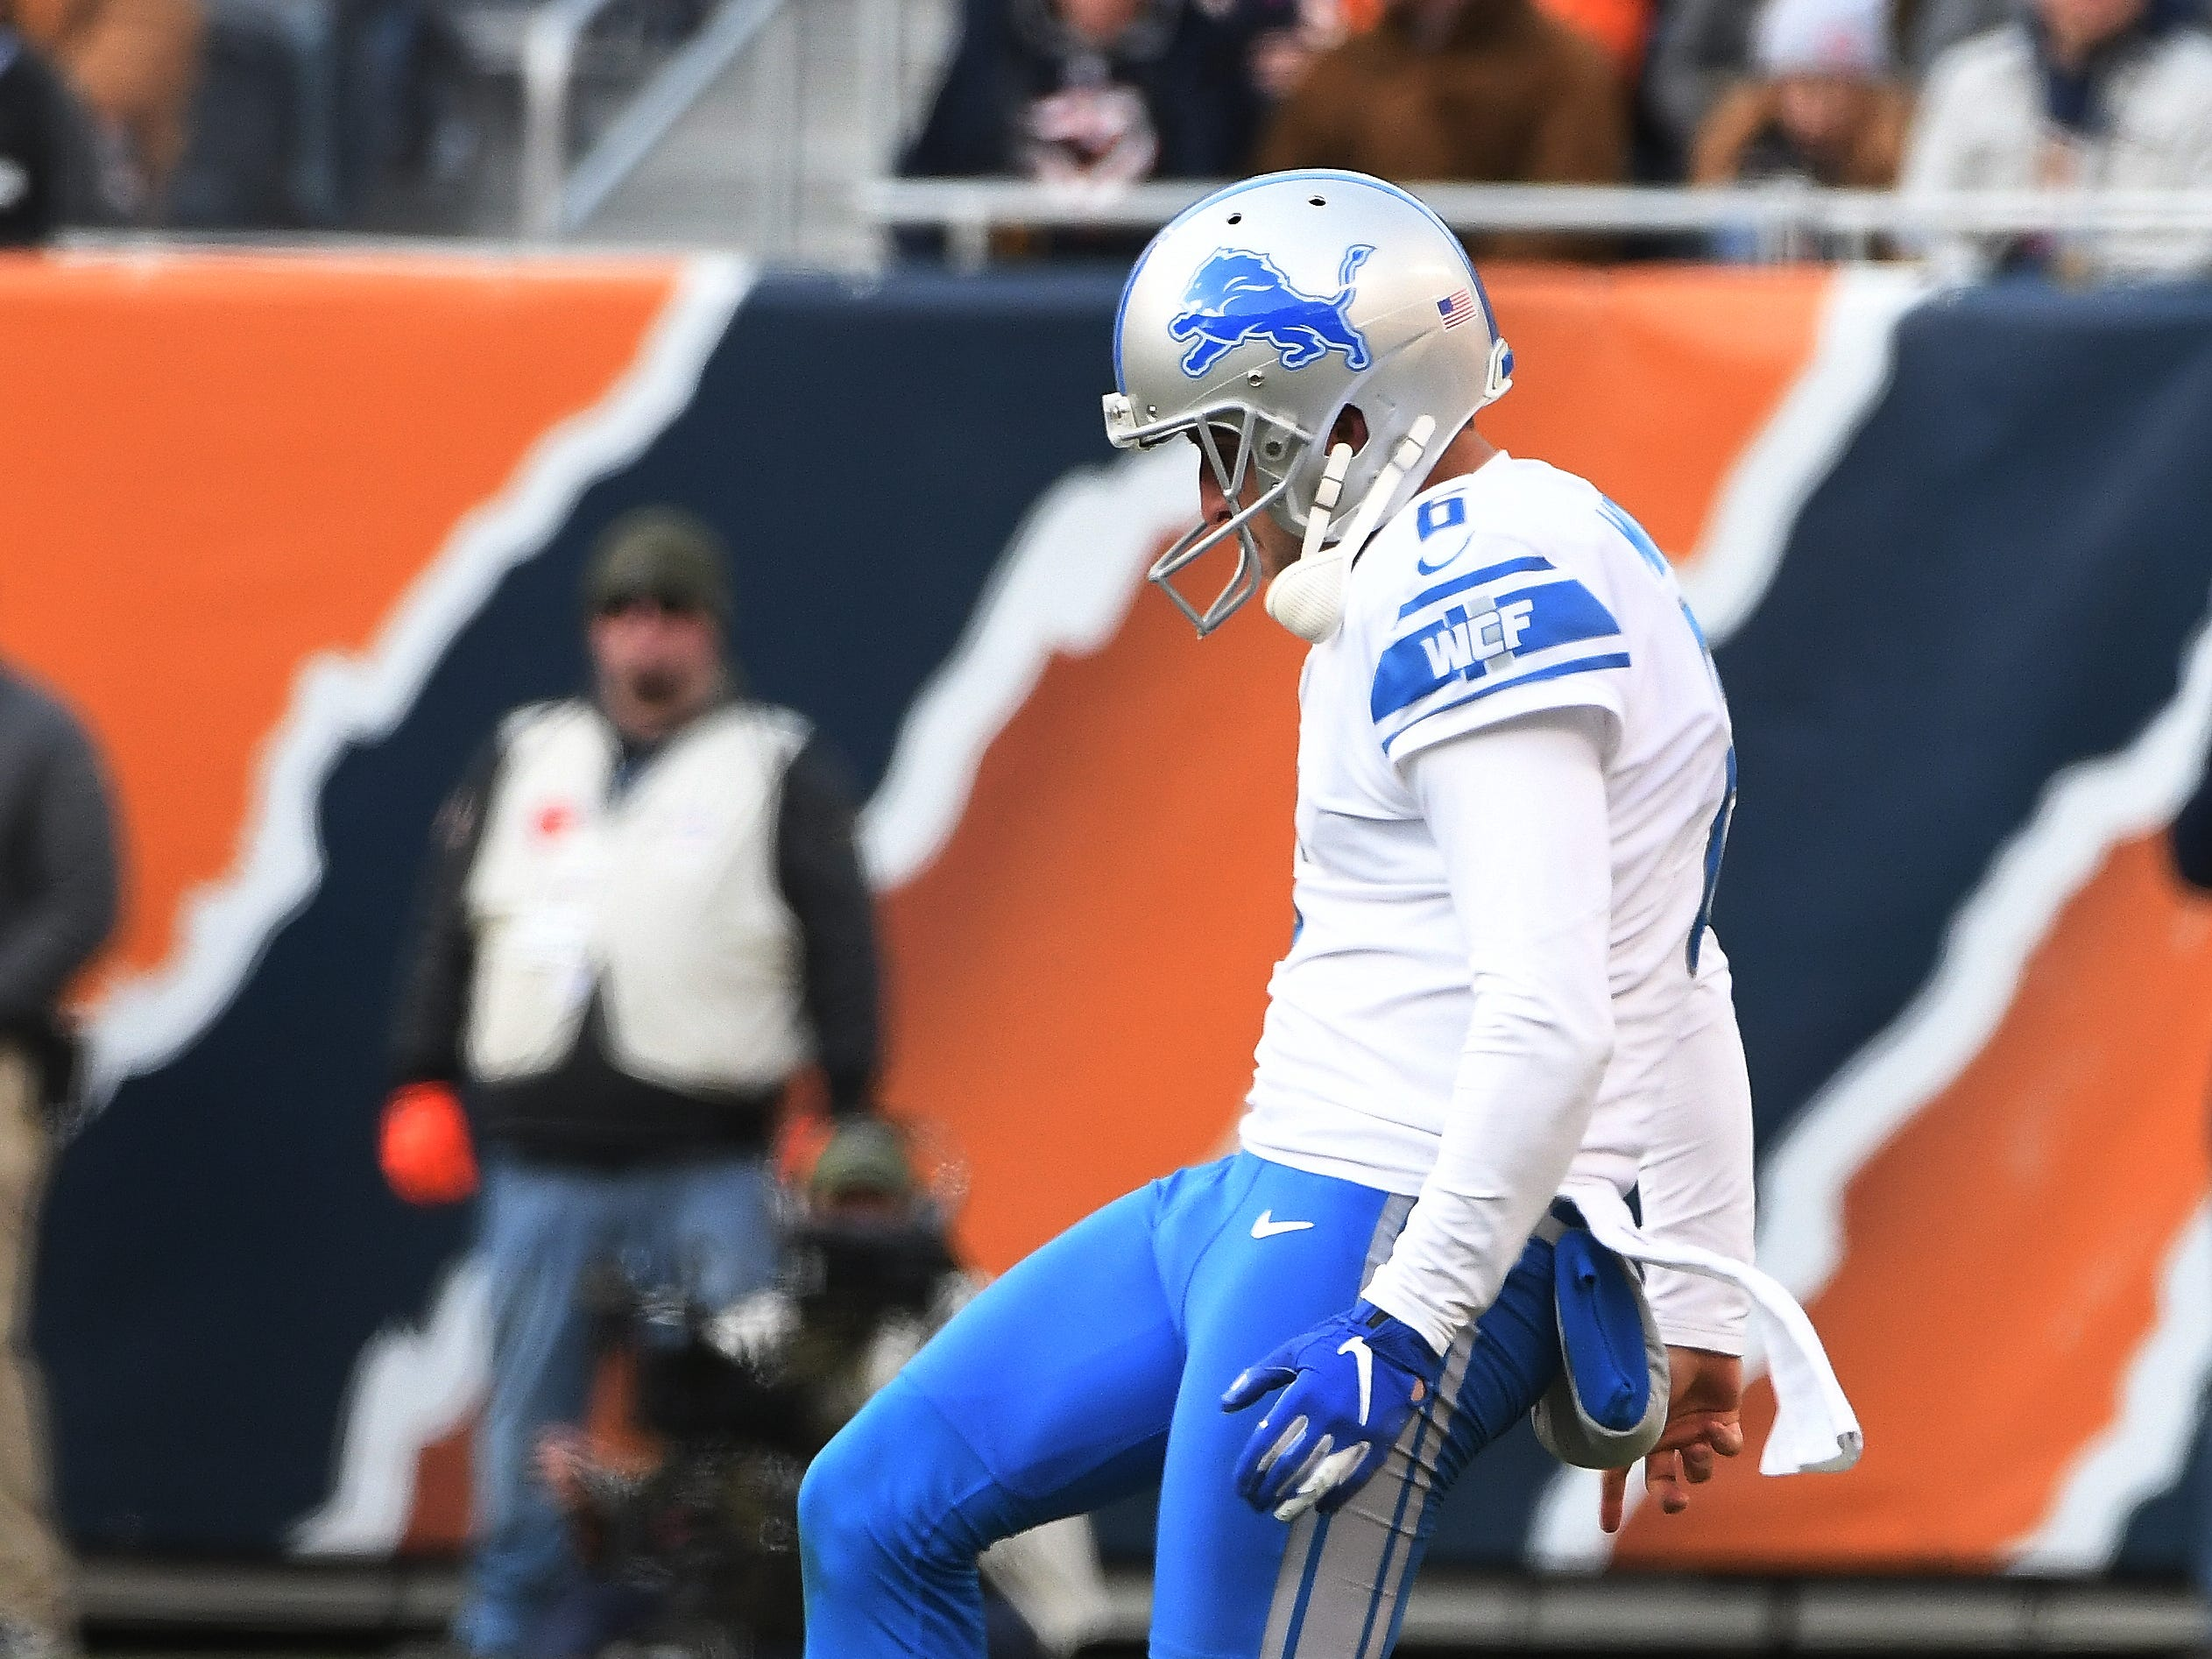 Lions punter Sam Martin kicks an onside kick that Detroit's Nick Bellore recovers in the fourth quarter.